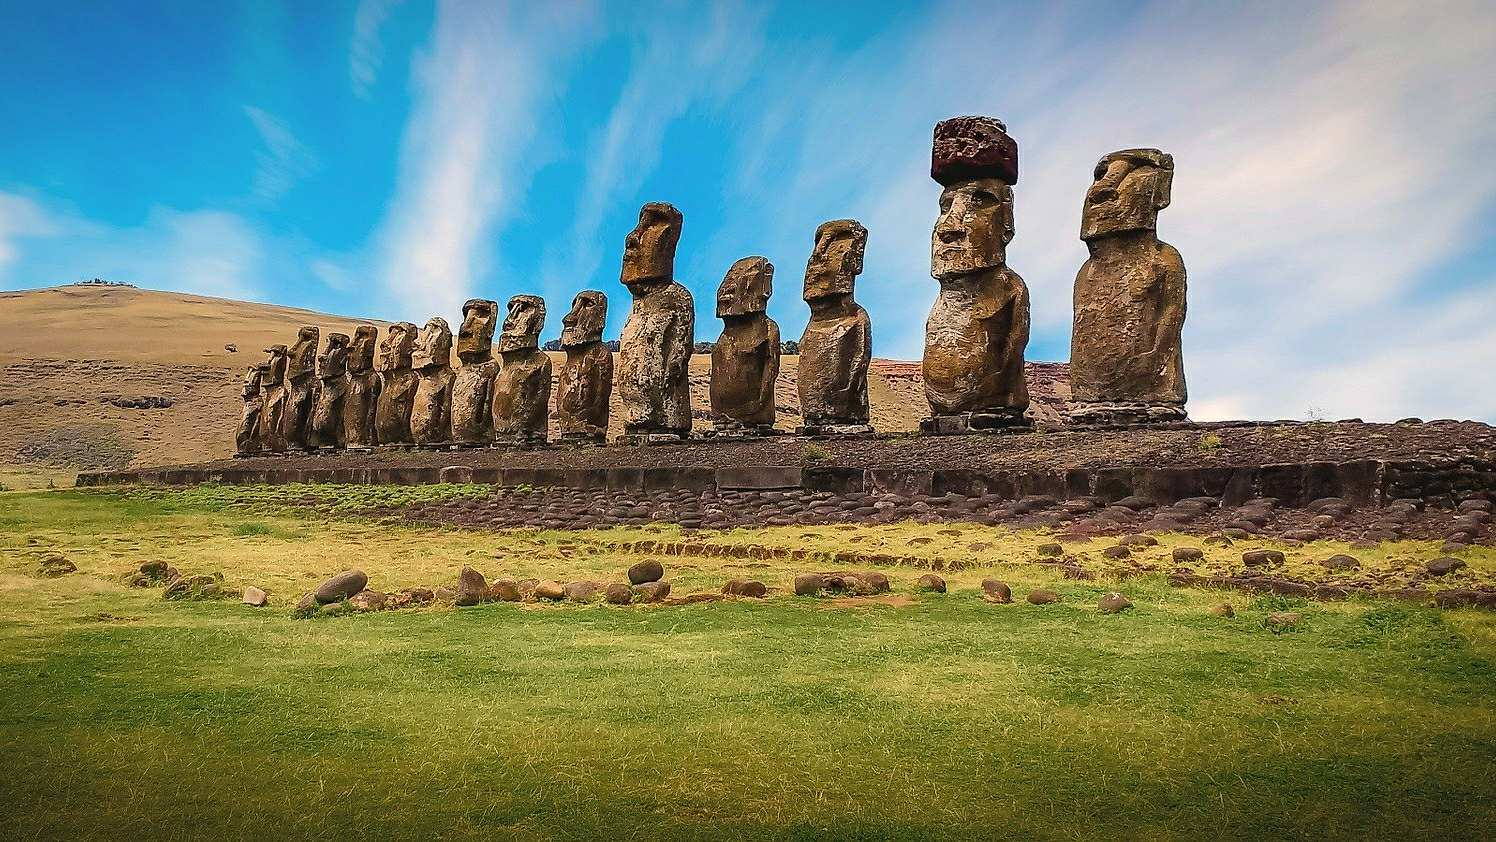 After the deforestation of Easter Island, the Rapanui Society continued